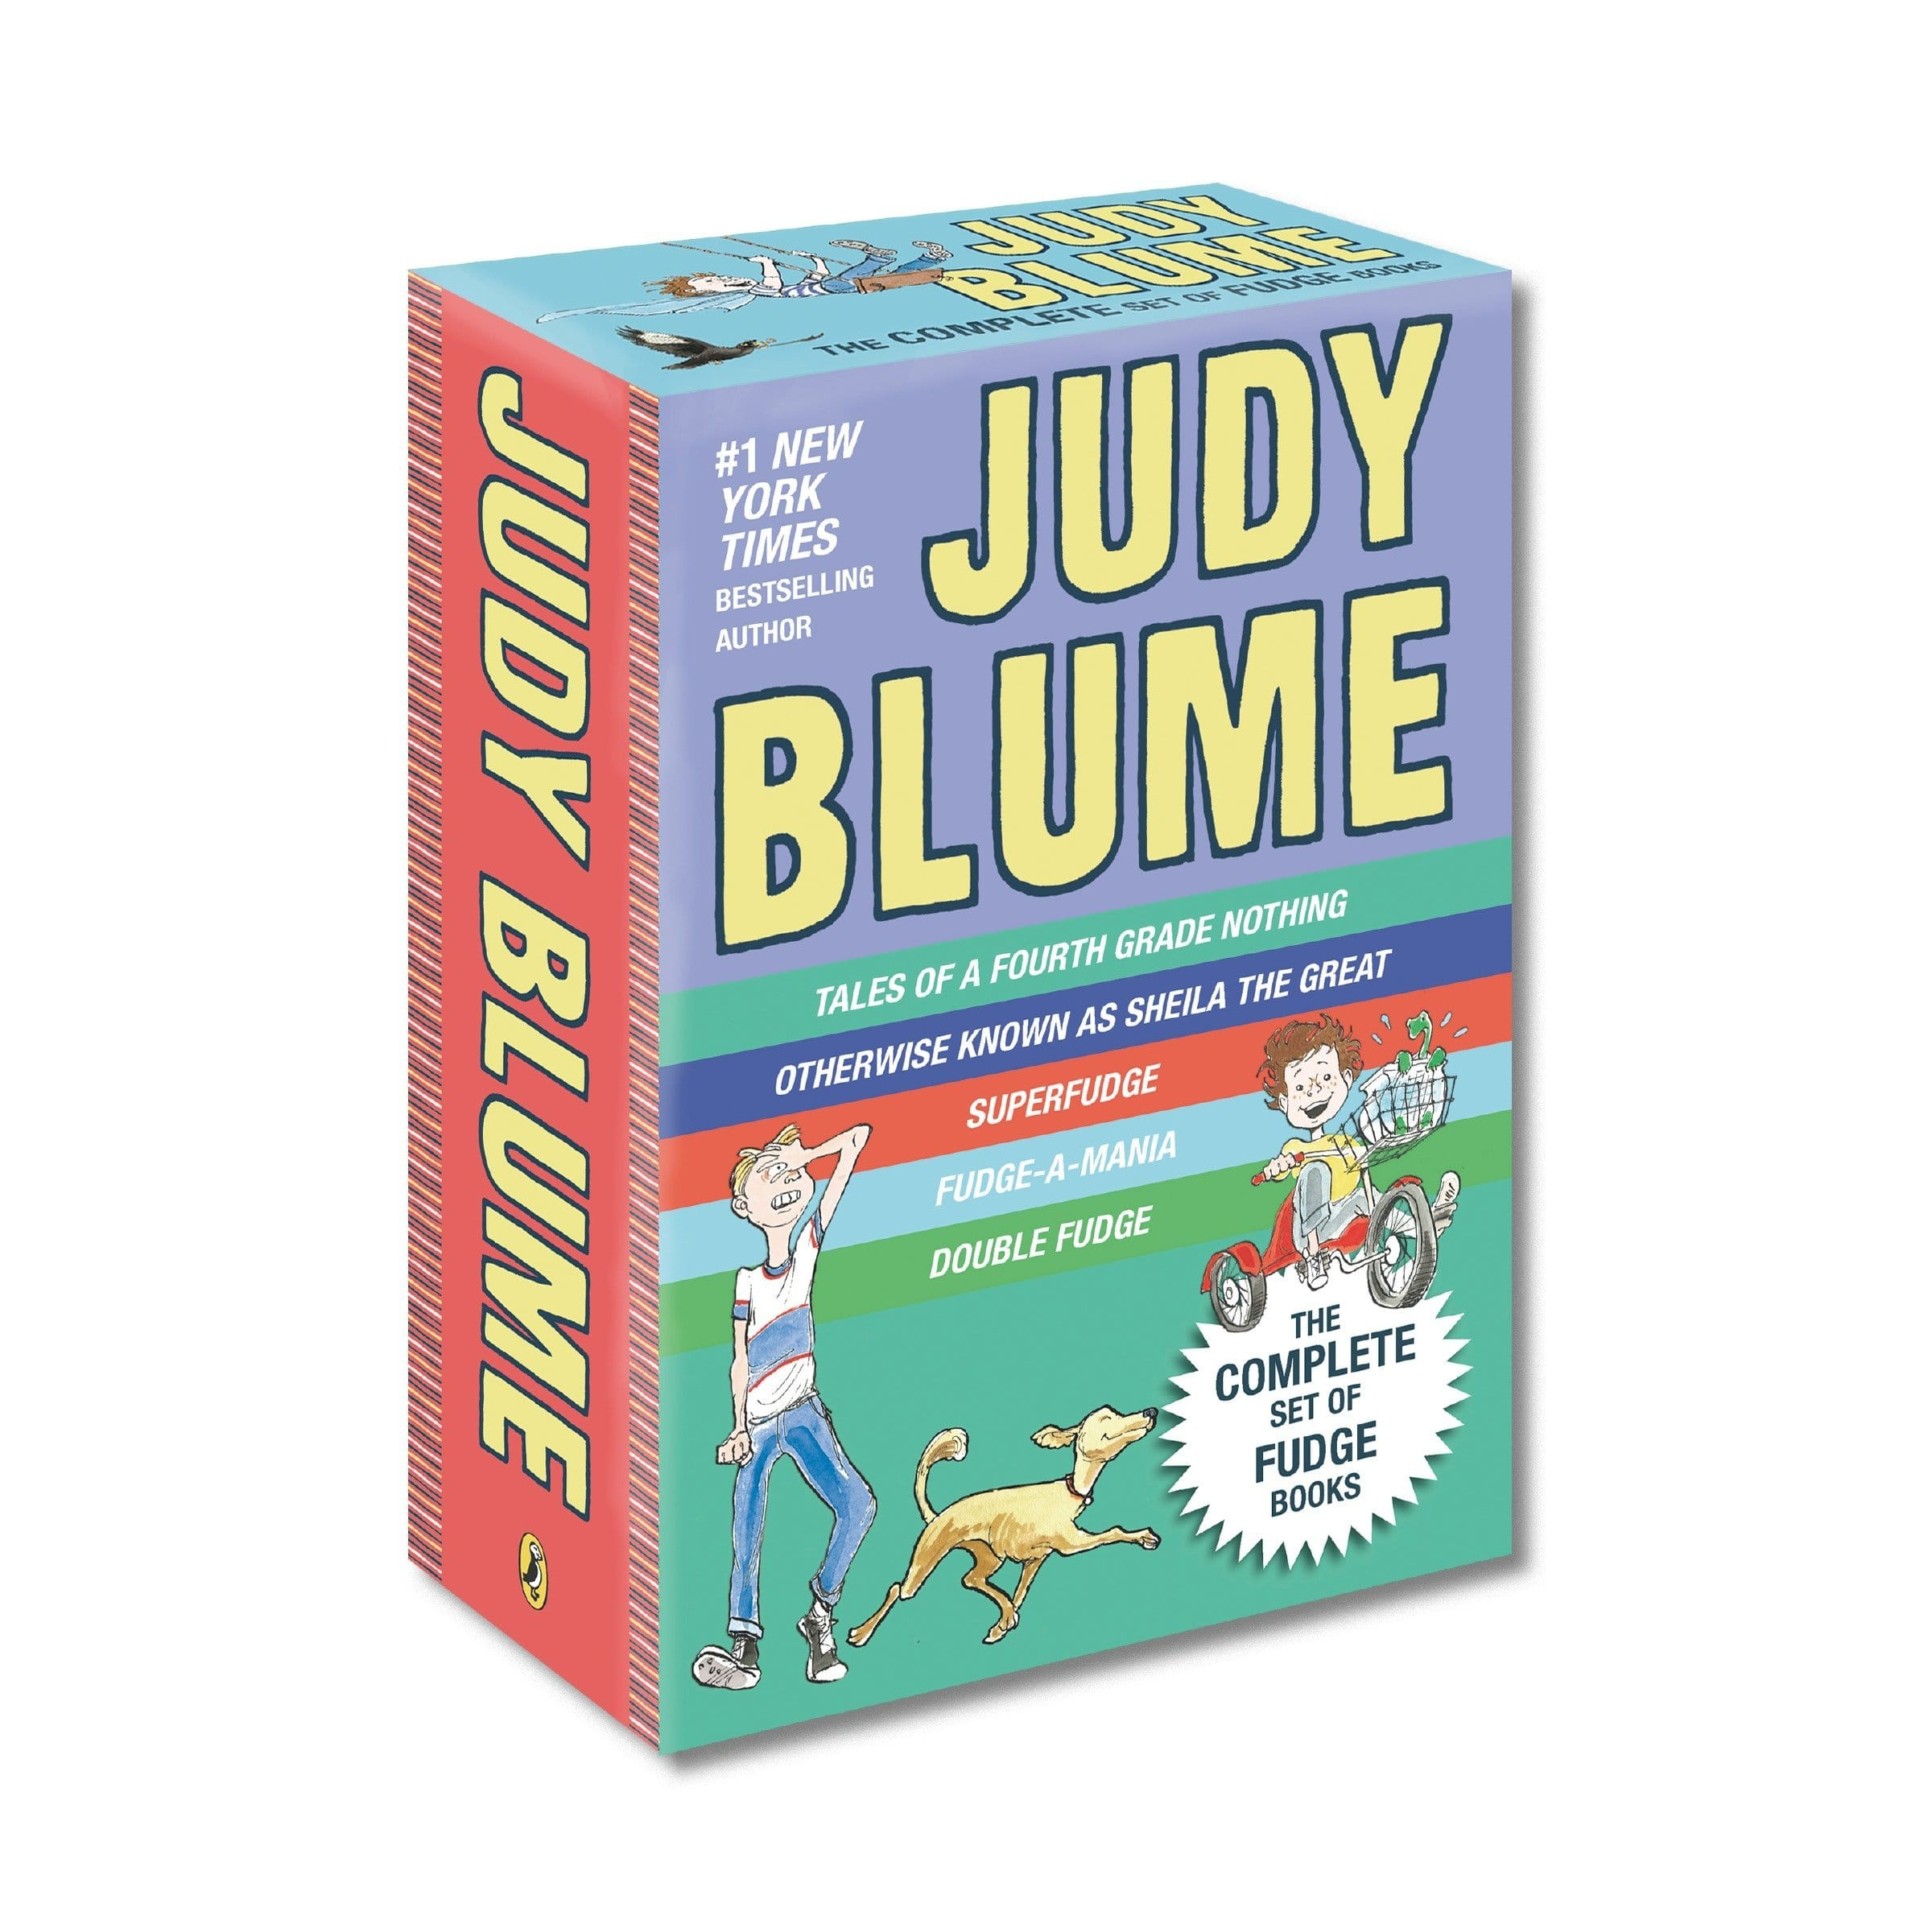 Judy Blume's Fudge Box Set (5 Paperback books for $3.77 / book) for $18.85